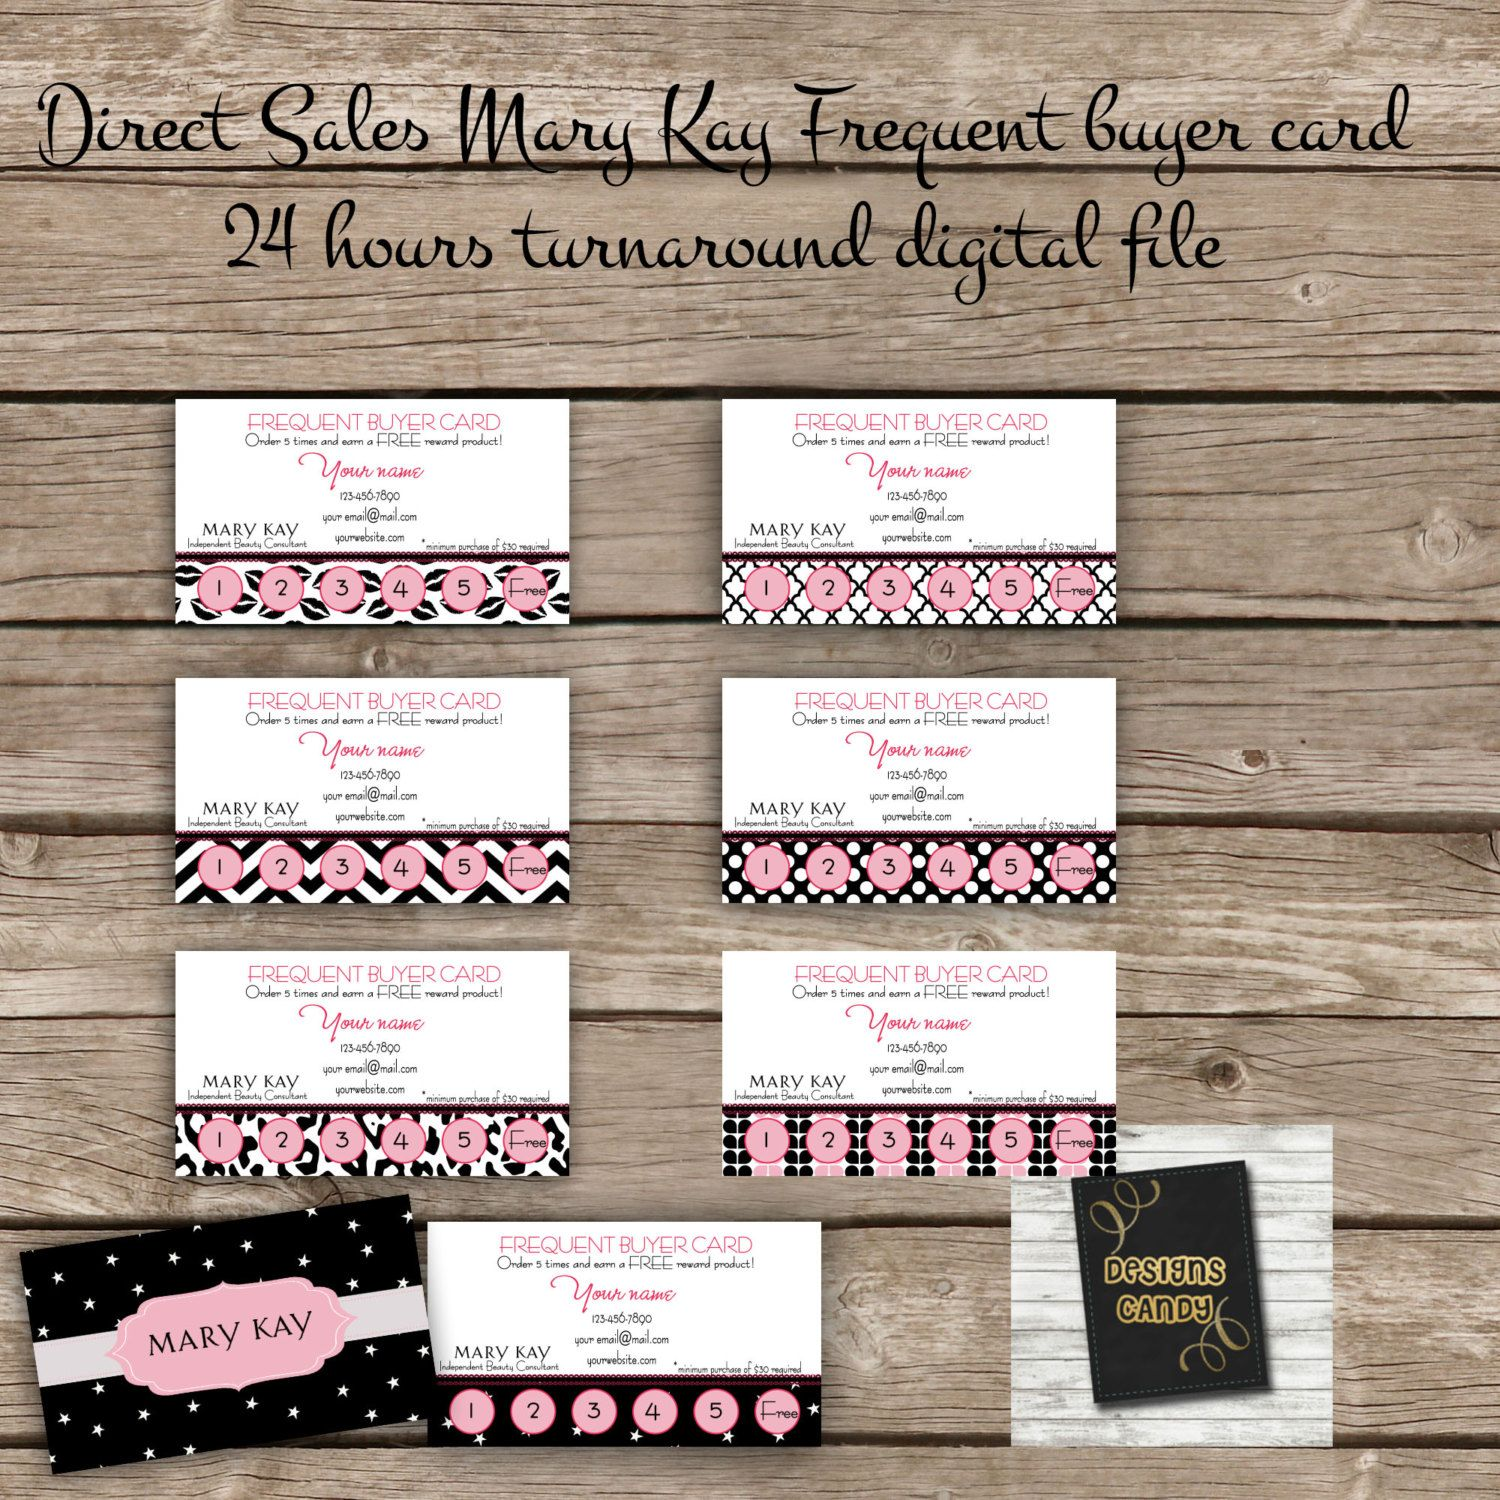 Frequent buyer card digital file direct sales business marketing frequent buyer card digital file direct sales business marketing mary kay business card printable diy custom digital download by designscand reheart Image collections